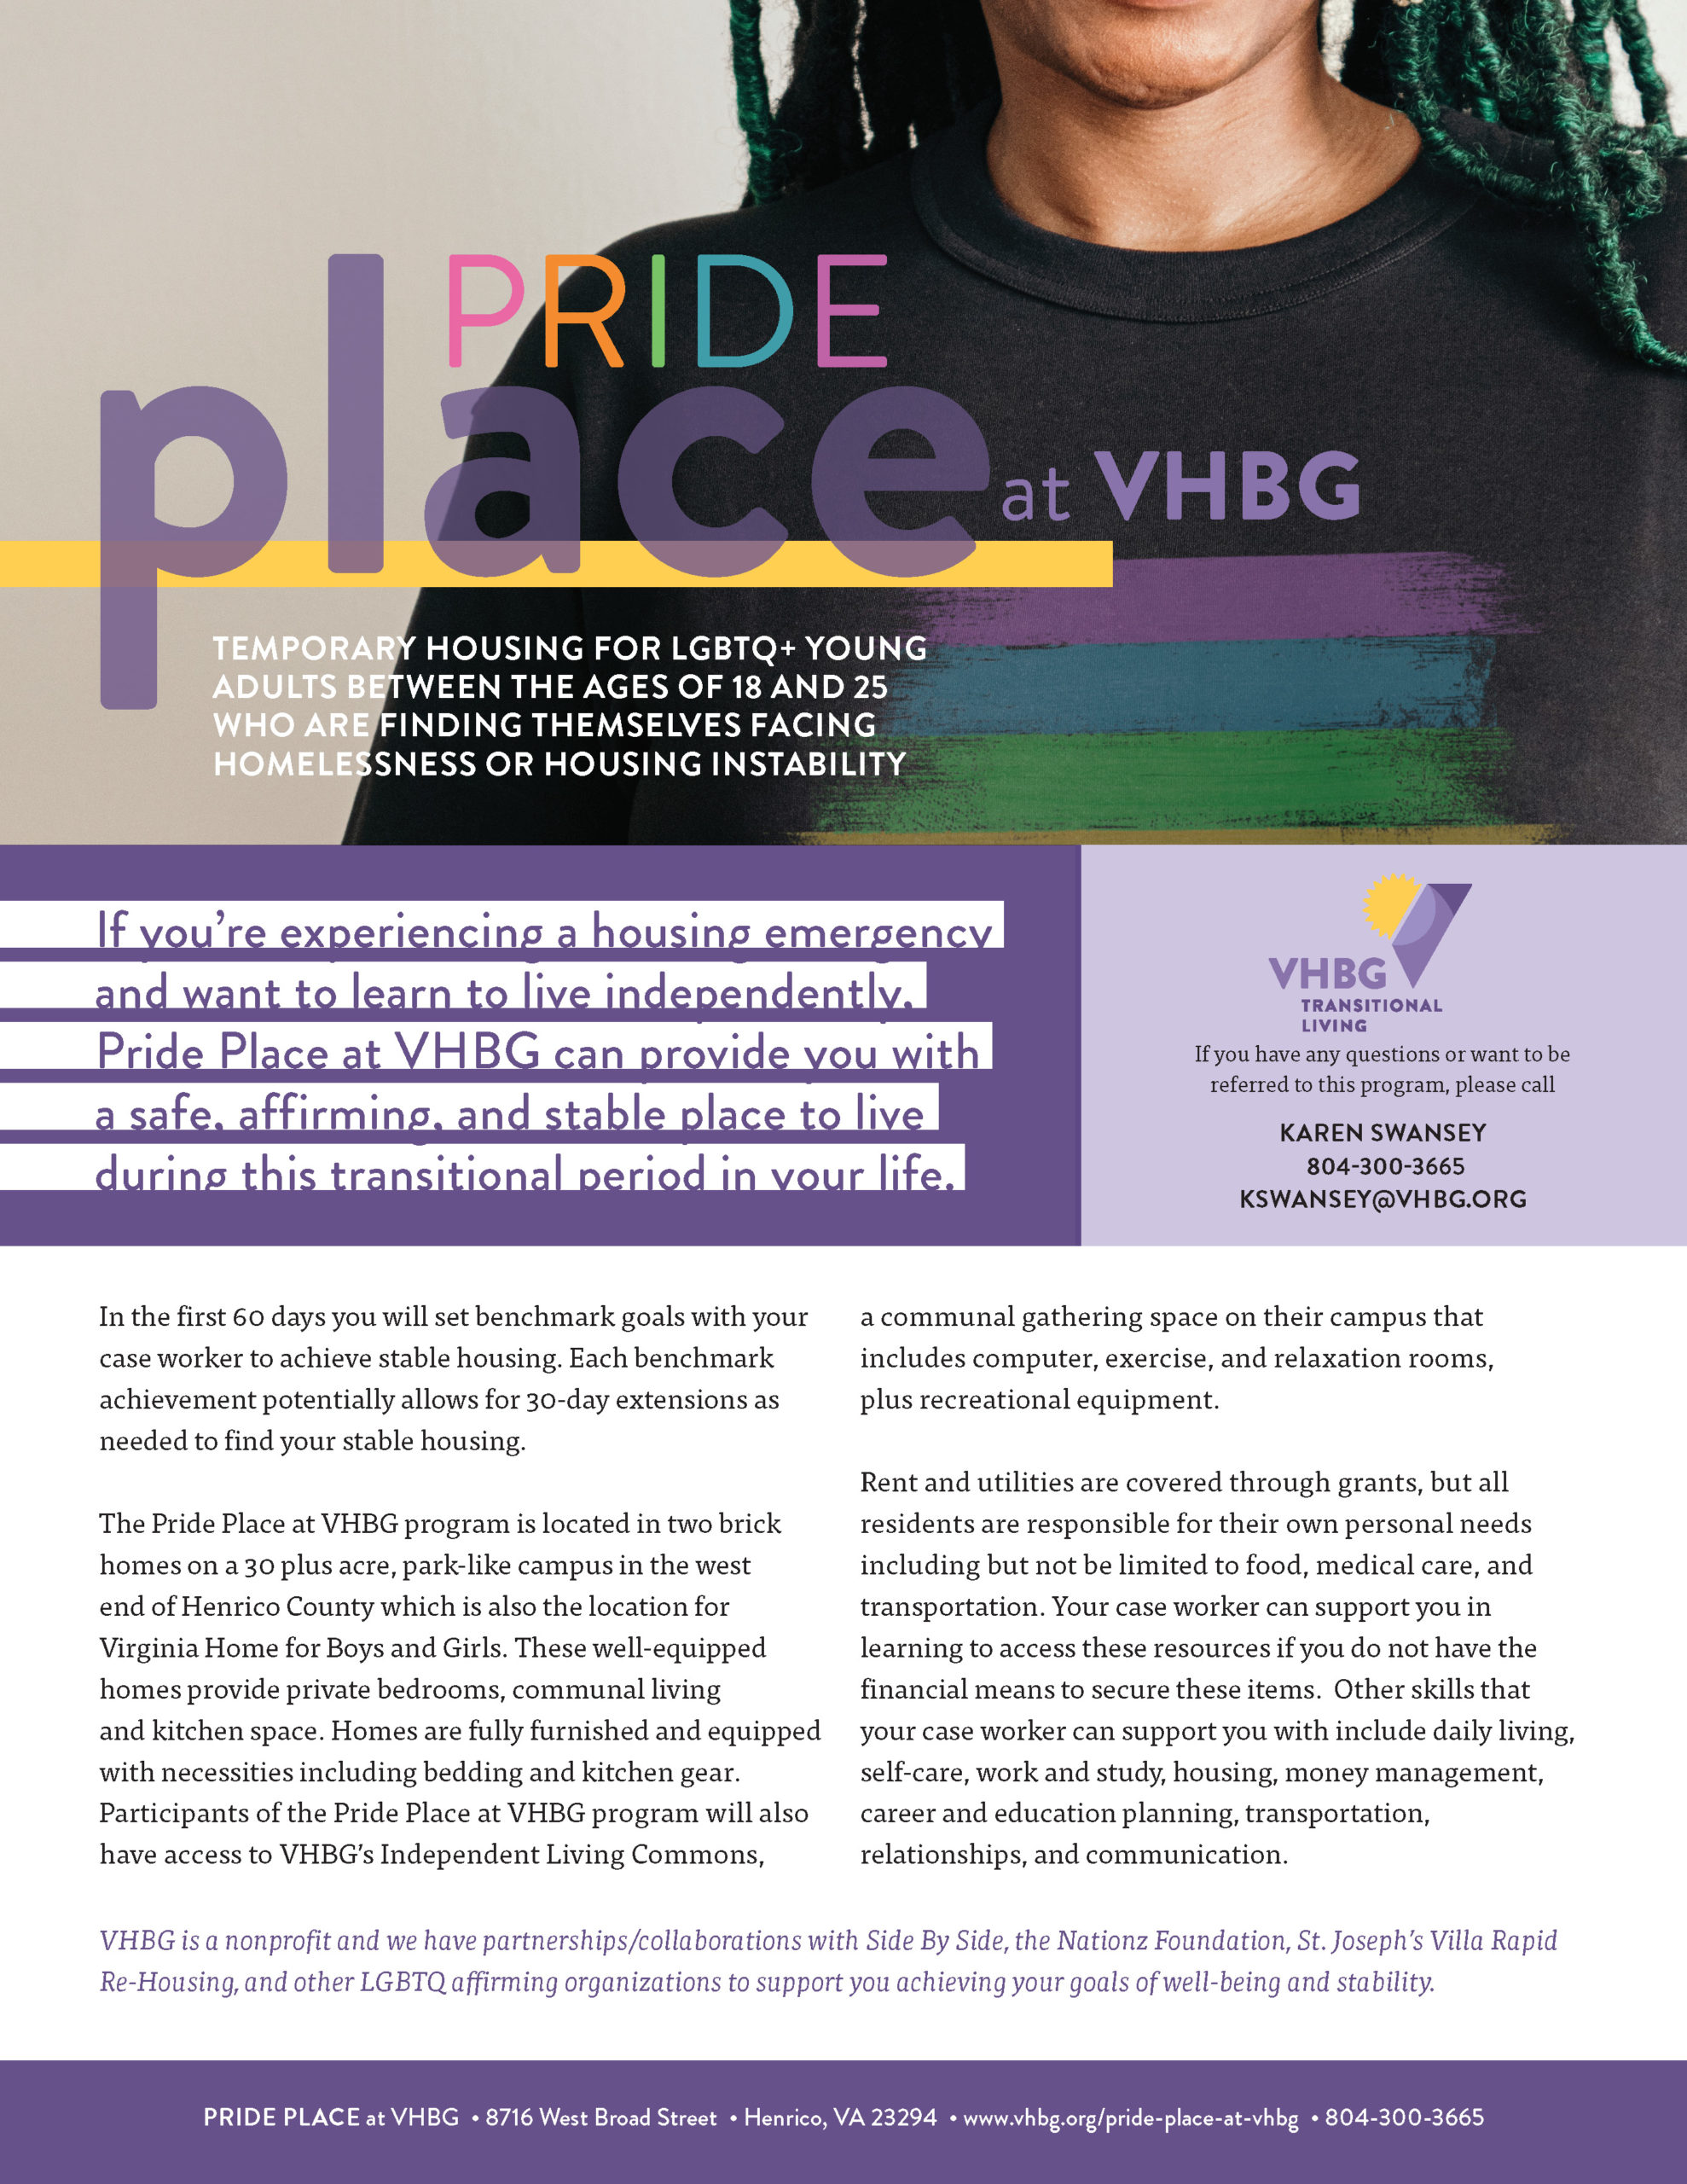 Pride Place at VHBG flyer